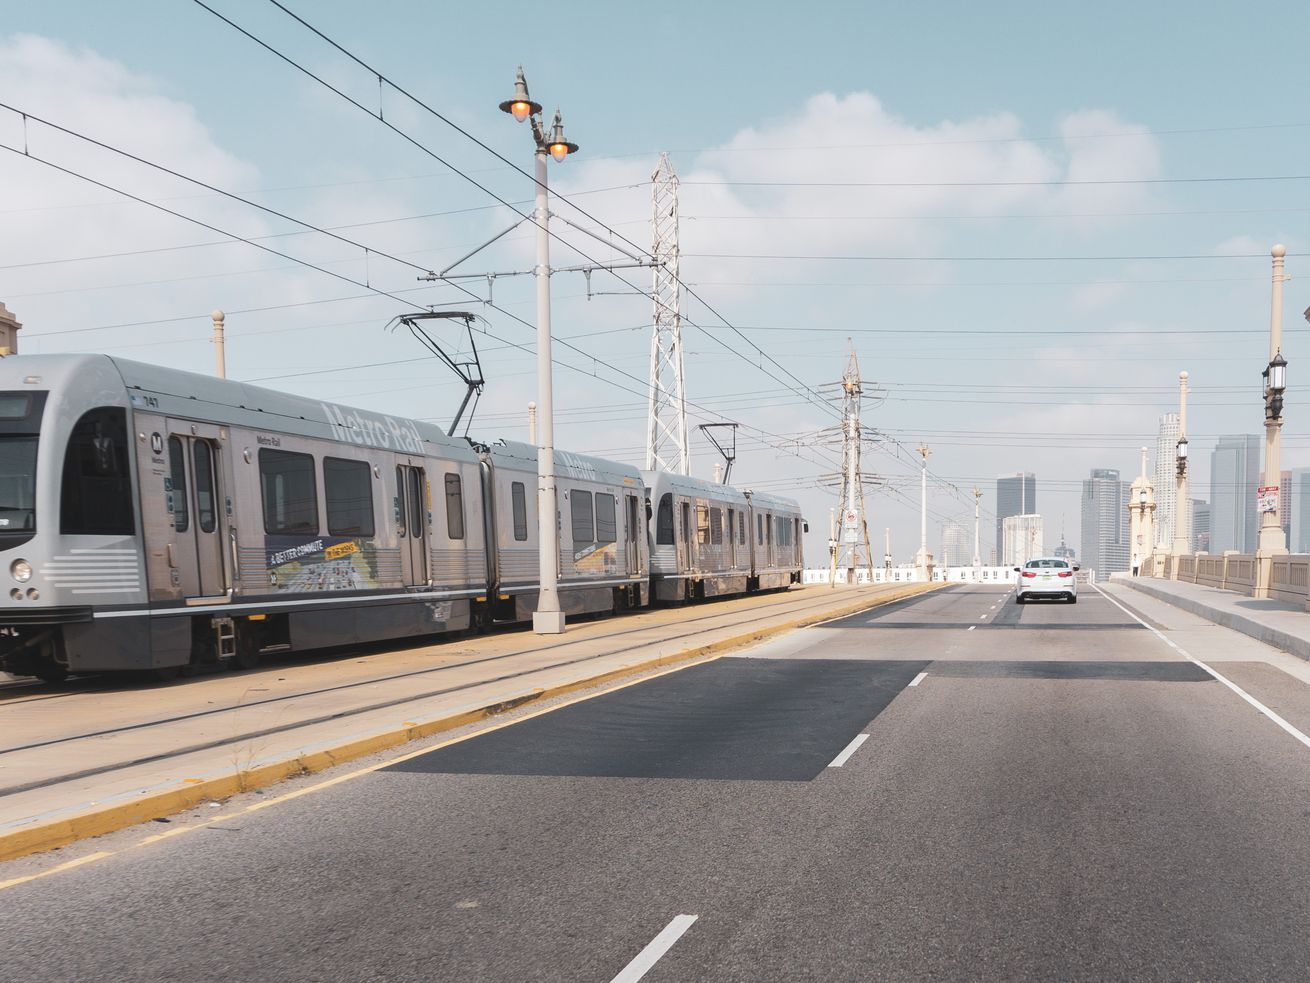 As Metro's rail network expands, the agency is considering using letters or numbers to name its lines.